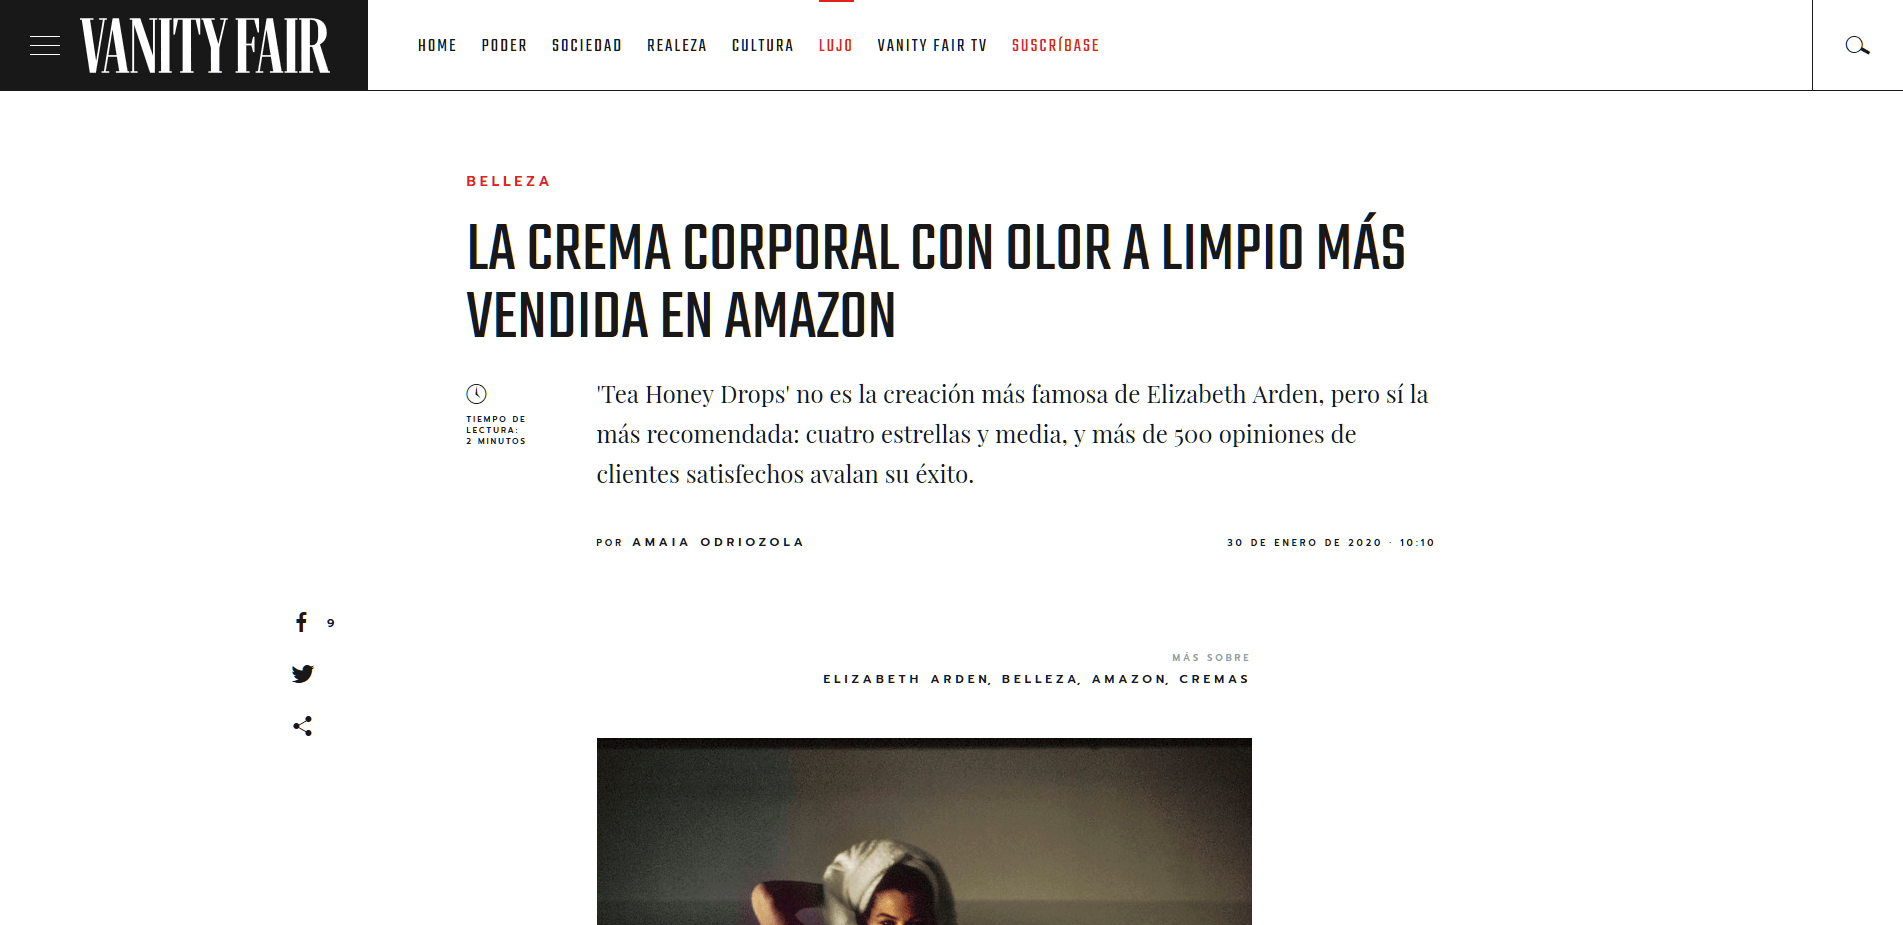 Press Tips Vanity Fair Sirope Vigo La crema corporal con olor a limpio más vendida en Amazon